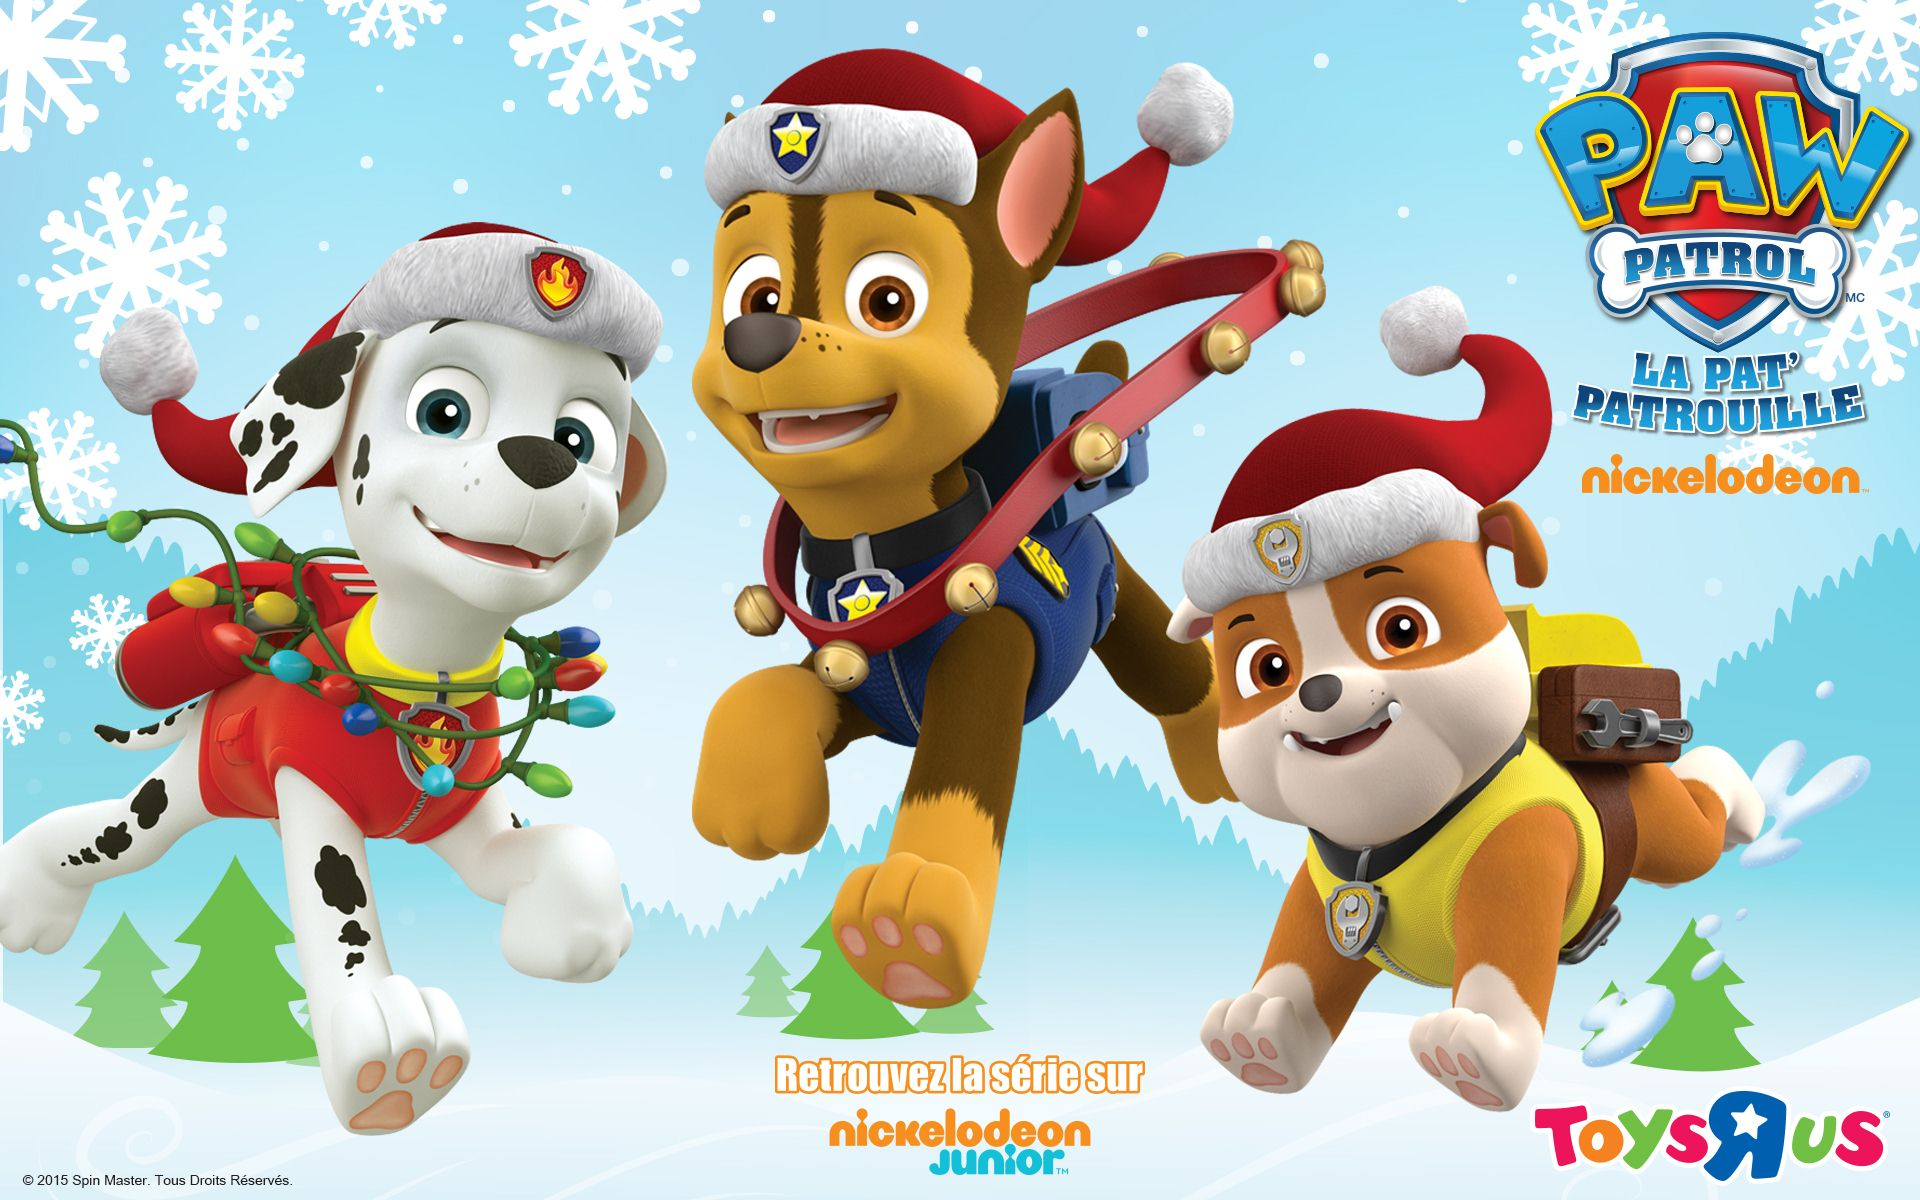 Paw patrol background clipart picture black and white library Wallpaper's Collection: «Paw Patrol Wallpapers» picture black and white library